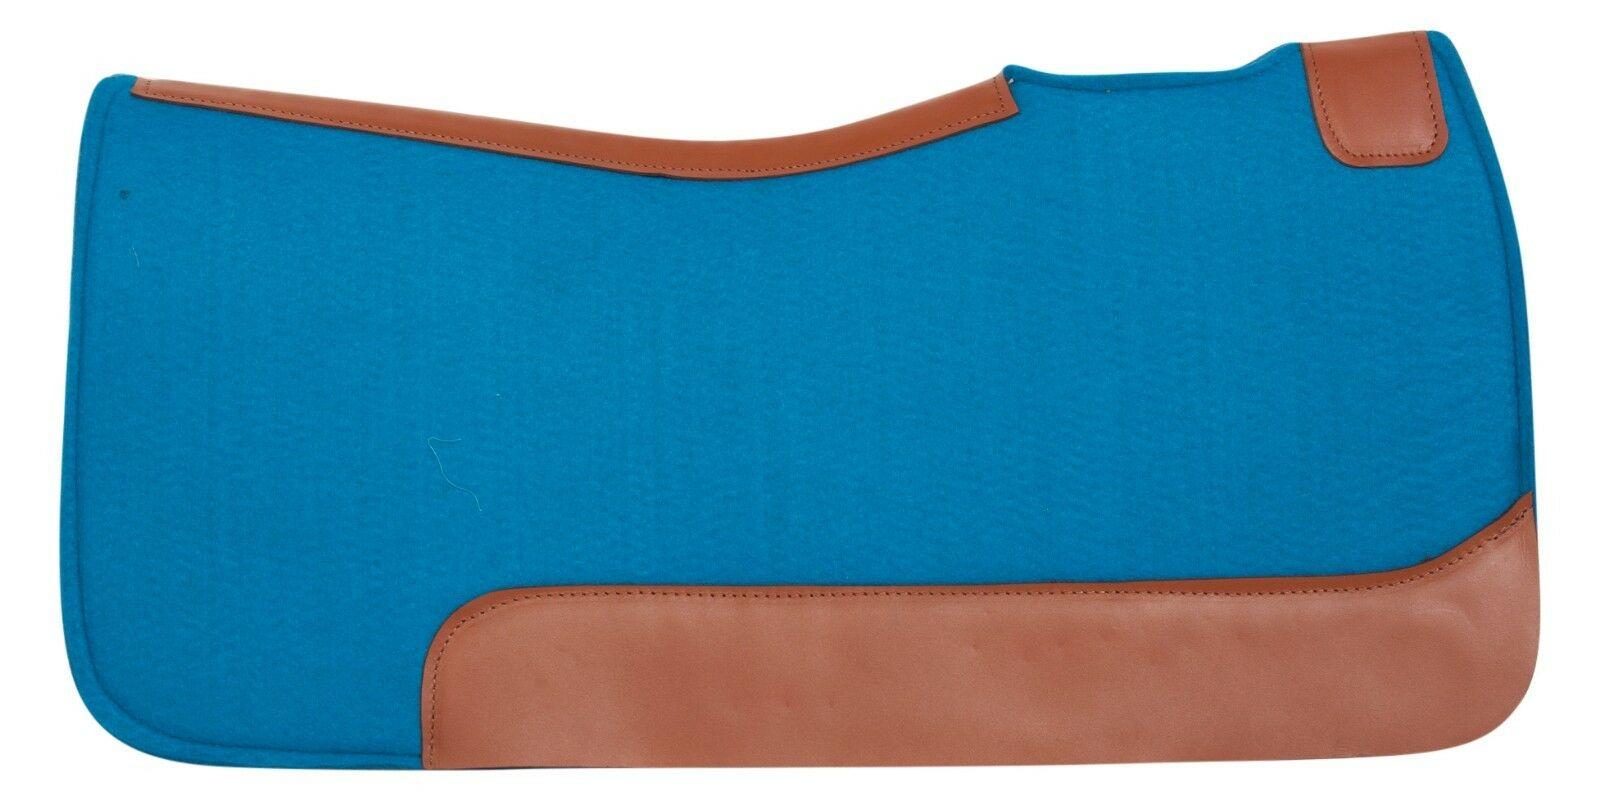 PRO  FIT CORRECTIVE blueE WESTERN HORSE SADDLE PAD THERAPEUTIC NON SLIP BLANKET  up to 65% off